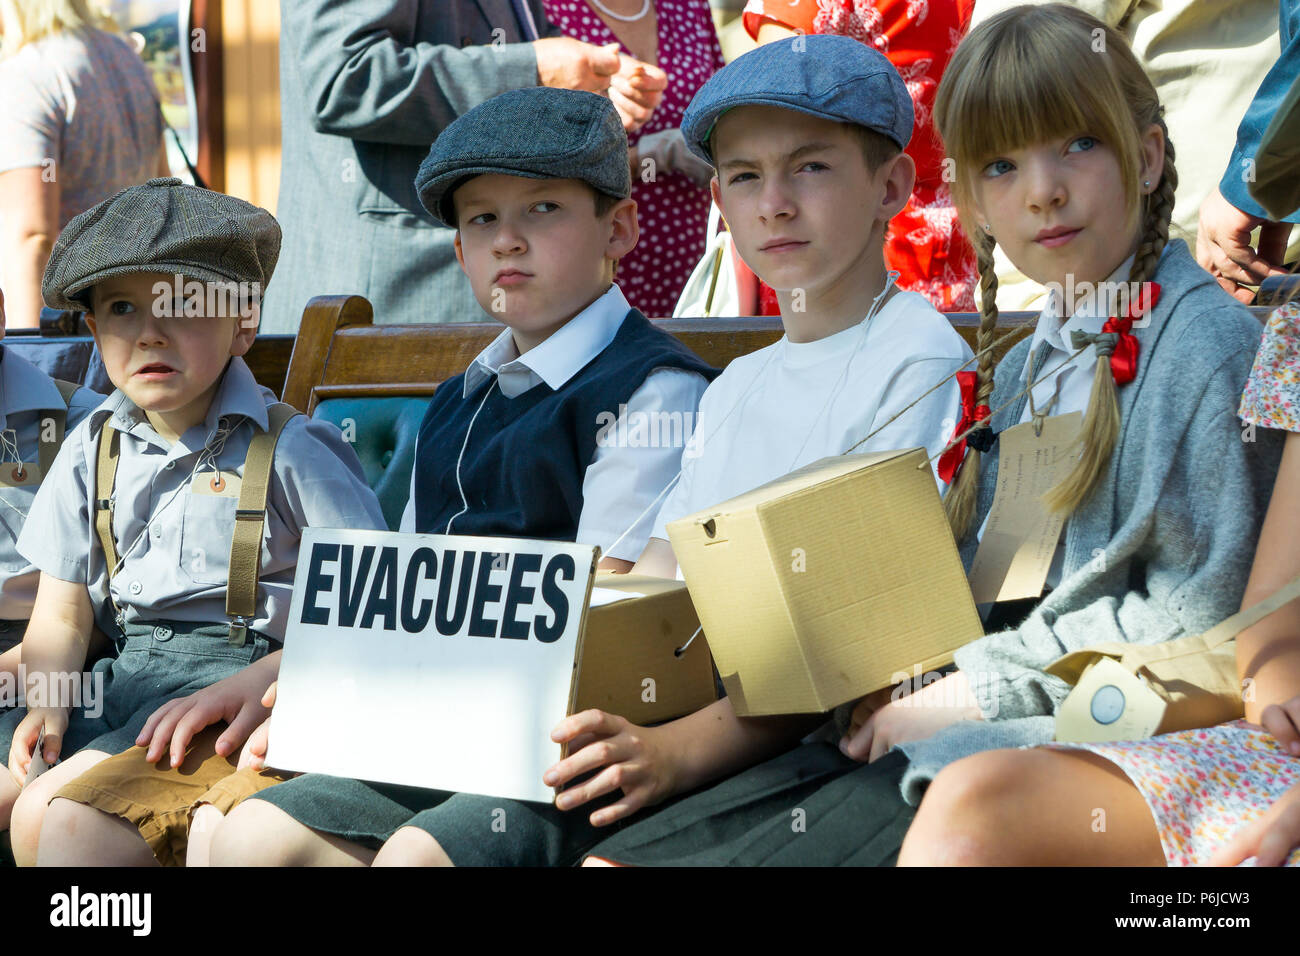 Kidderminster, UK. 30th June, 2018. A journey back in time begins on the Severn Valley Railway as all involved turn the clock back to the 1940s. Visitors and staff pull out all the stops to ensure a realistic wartime Britain is experienced by all on this heritage railway line. Credit: Lee Hudson/Alamy Live News Stock Photo